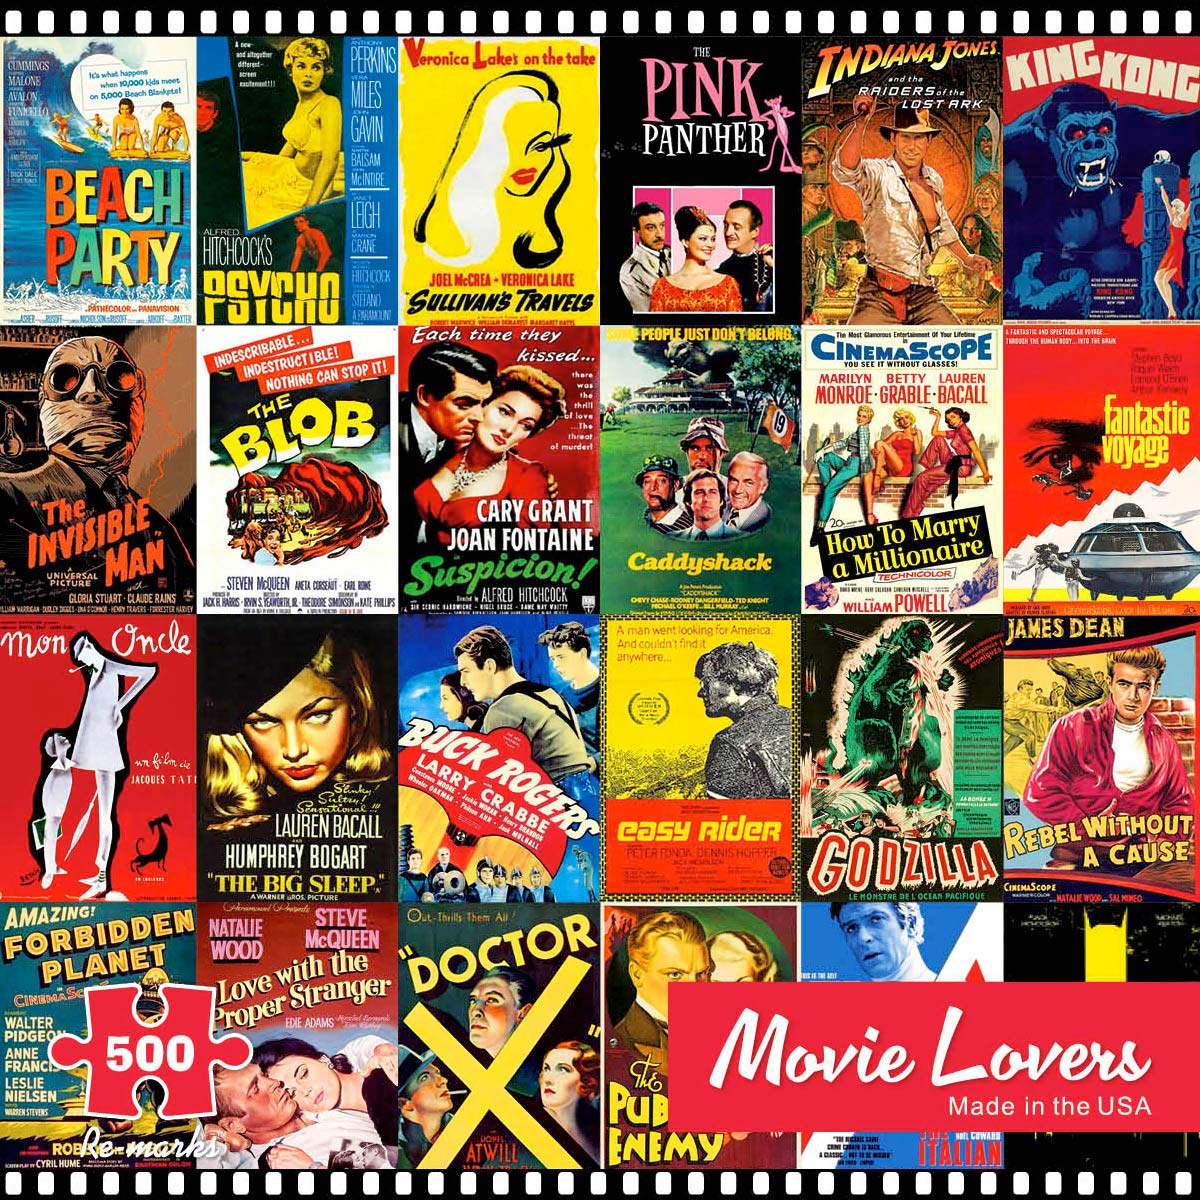 Movie Lovers Movies / Books / TV Jigsaw Puzzle